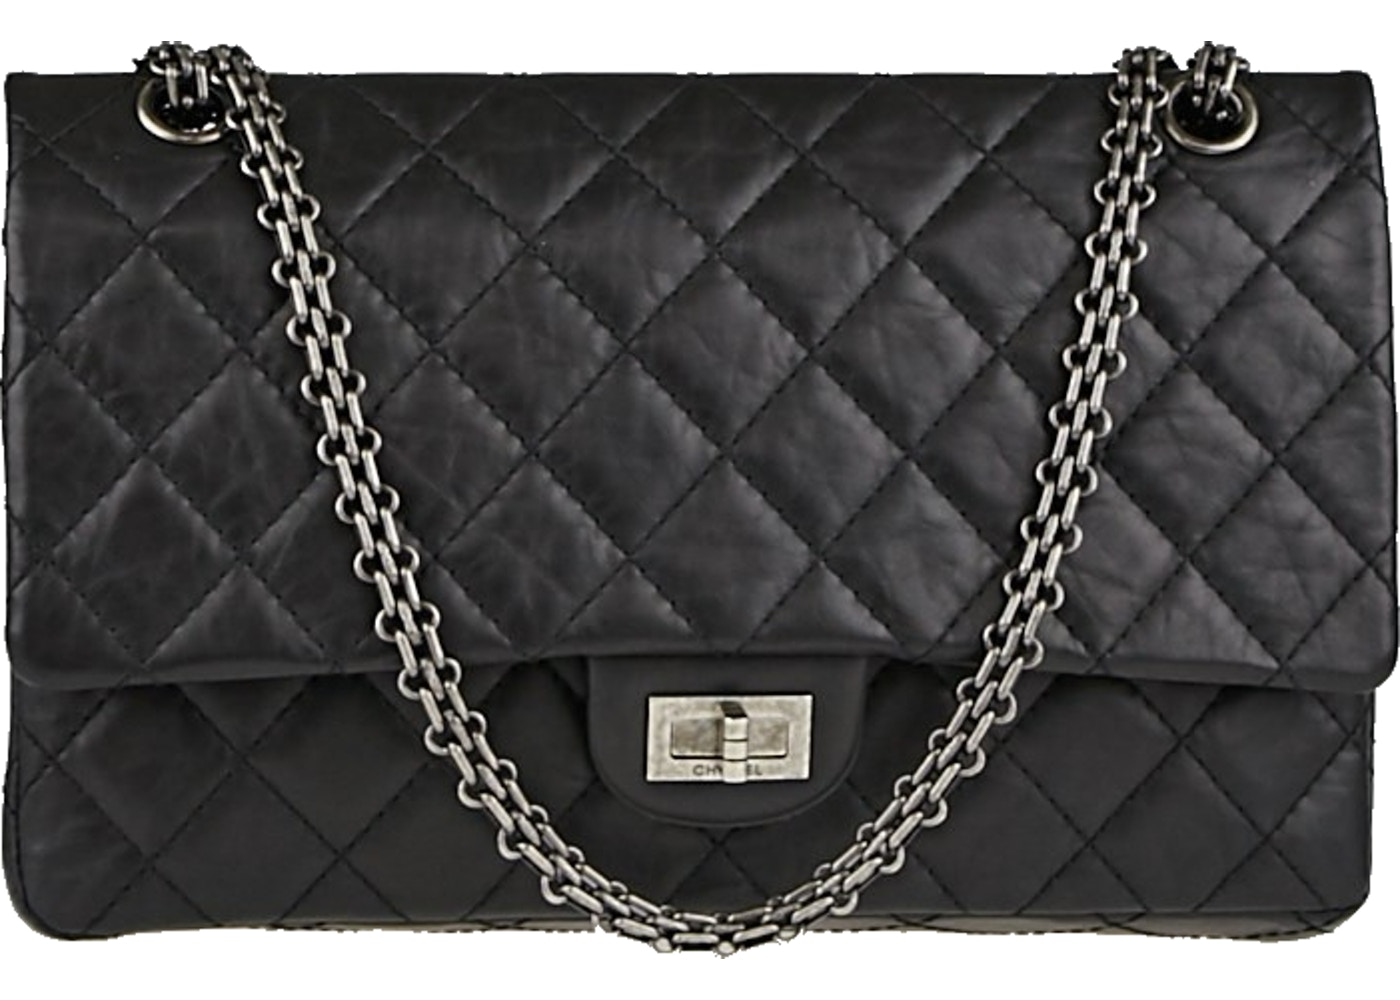 4608a52aef67 Chanel Reissue 2.55 Classic Double Flap Quilted Aged 226 Black